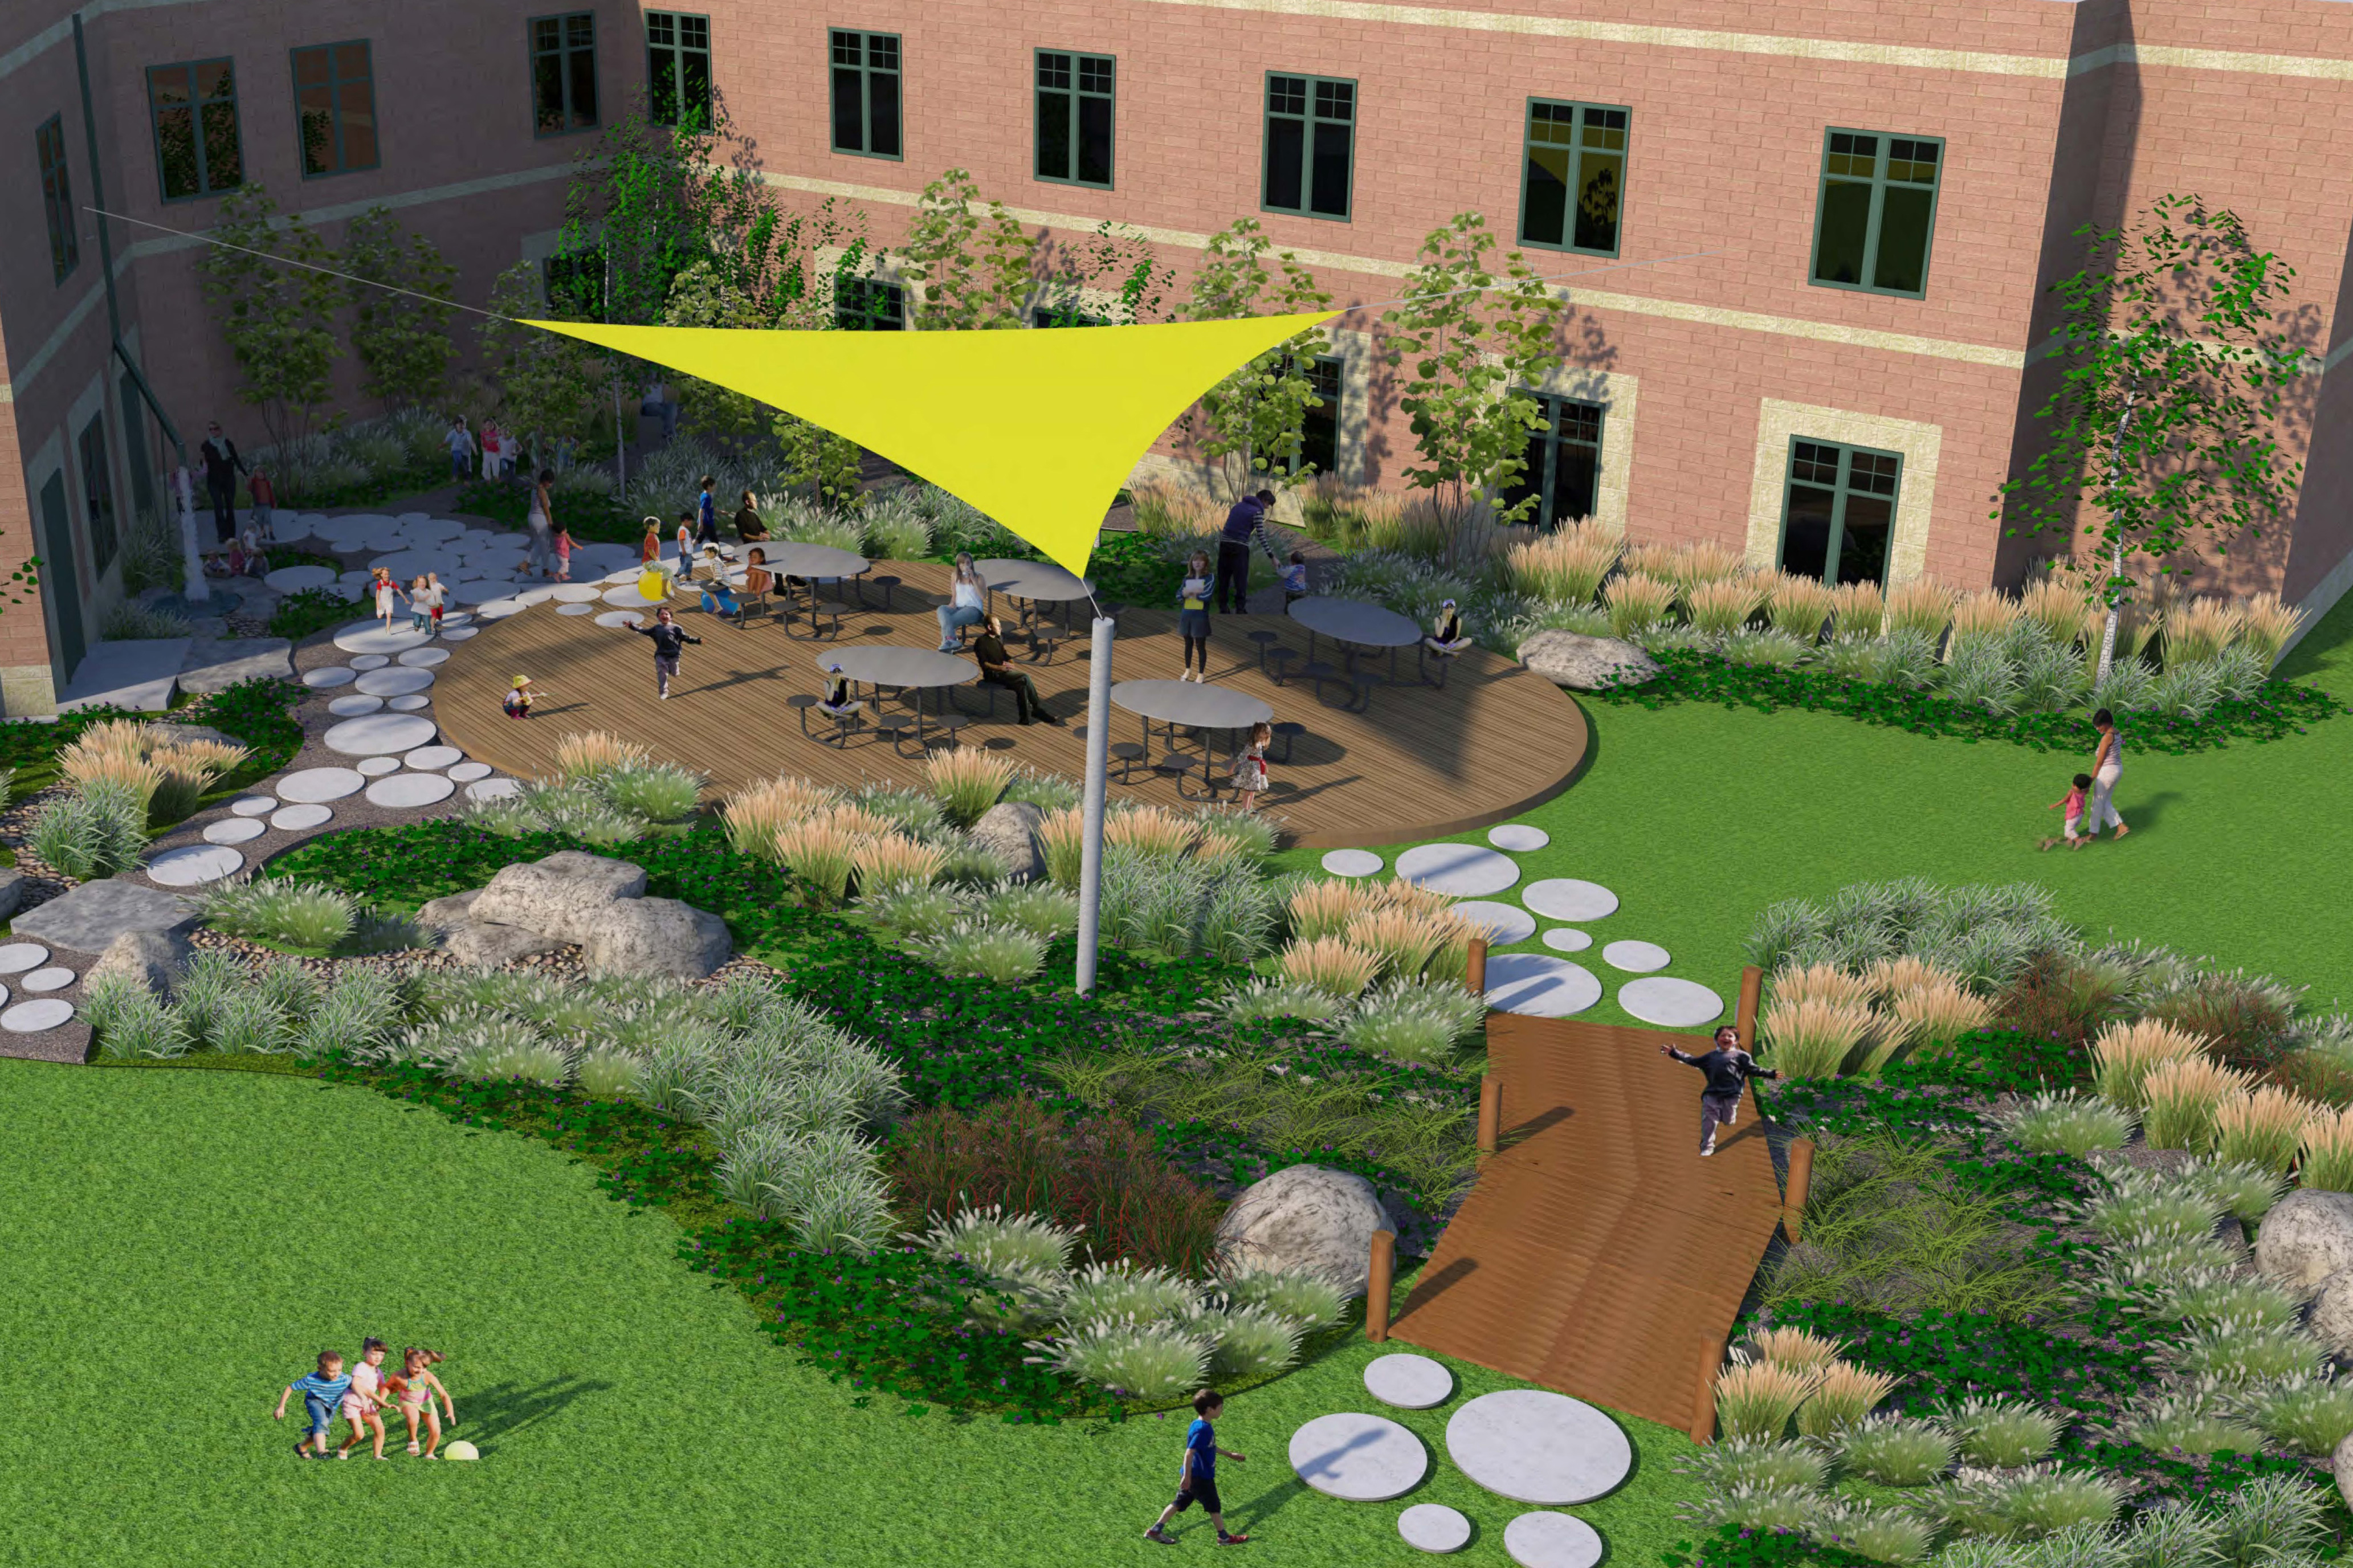 The Outdoor Learning Commons